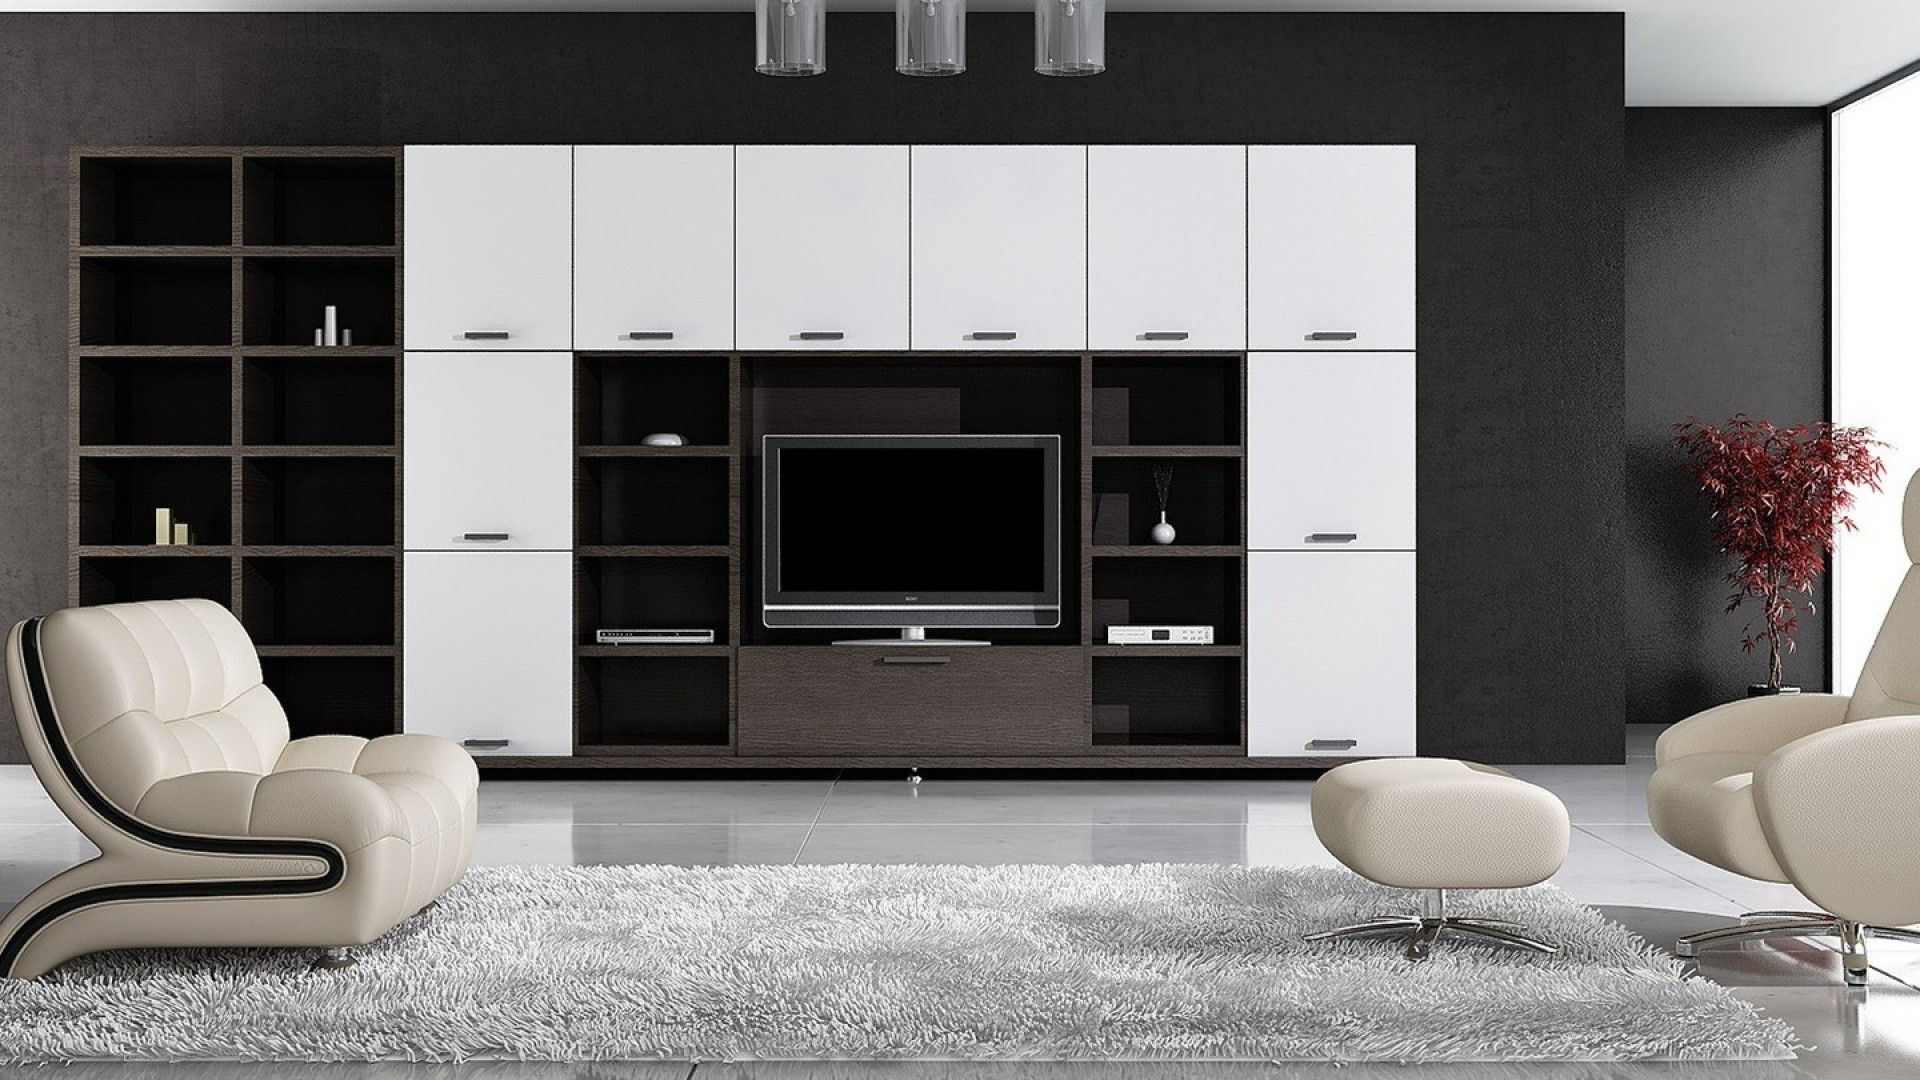 Reminder to consider the balance of the main wall - with black/white shelves and black TV the wall can become too dark or heavy easily